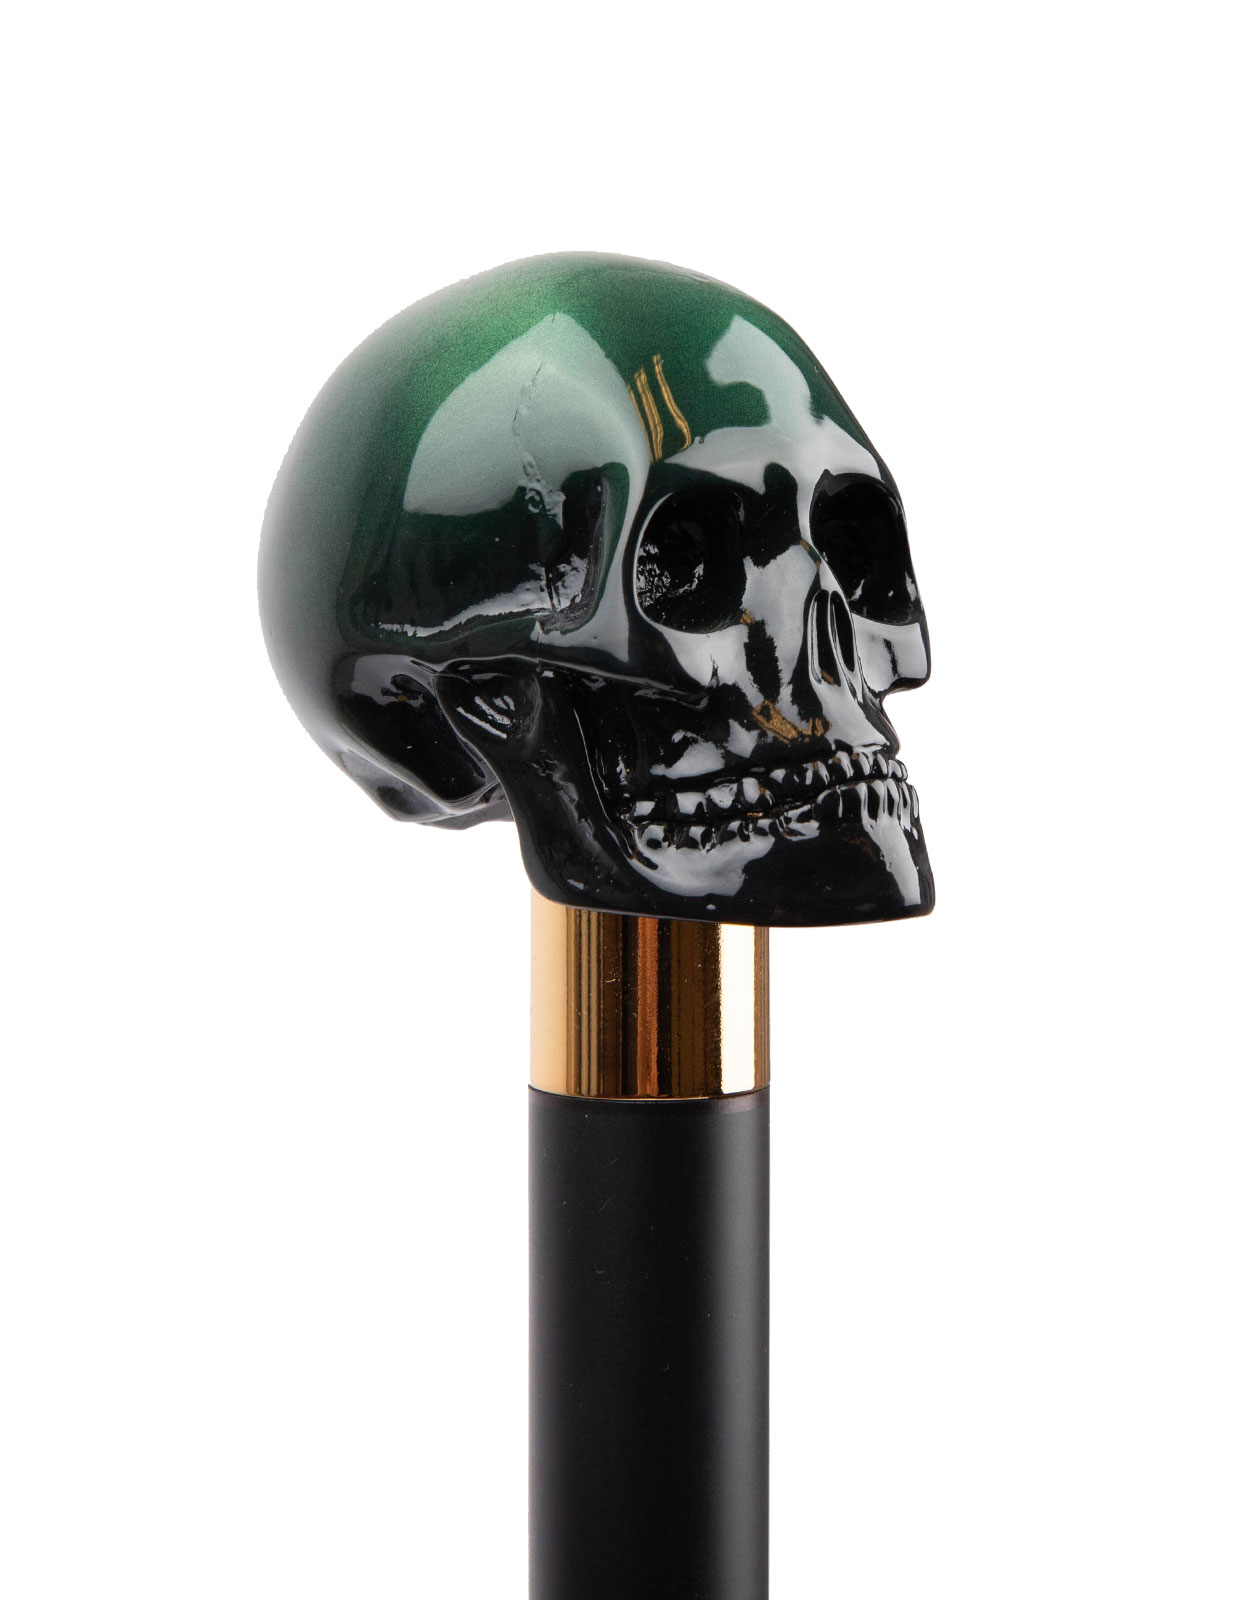 Shoehorn Rock & Roll Skull Camo/Shaded Green Stl